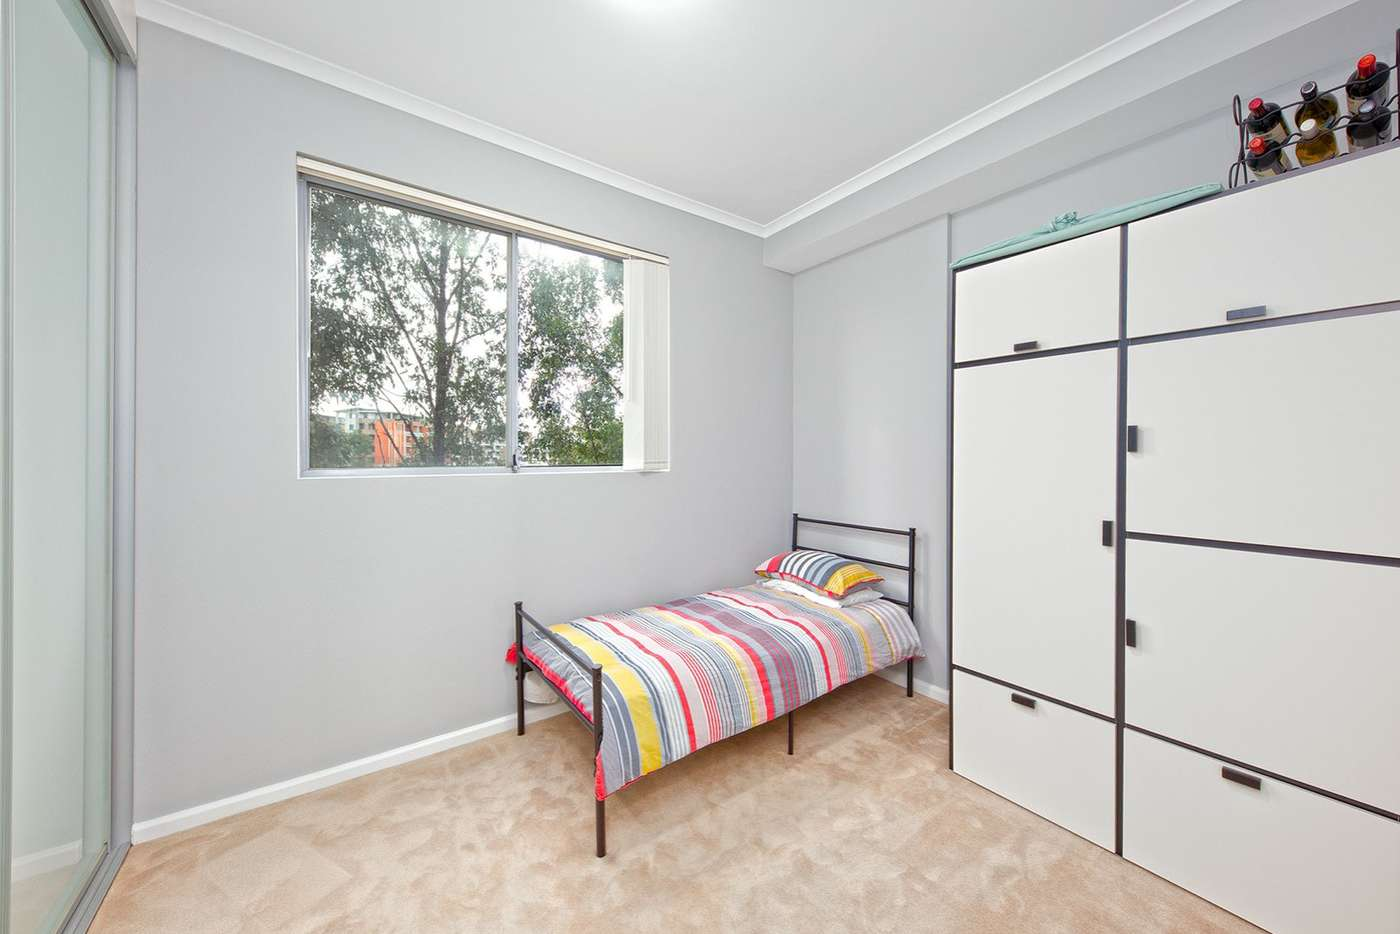 Sixth view of Homely unit listing, A401/42-50 Brickworks Drive, Merrylands NSW 2160